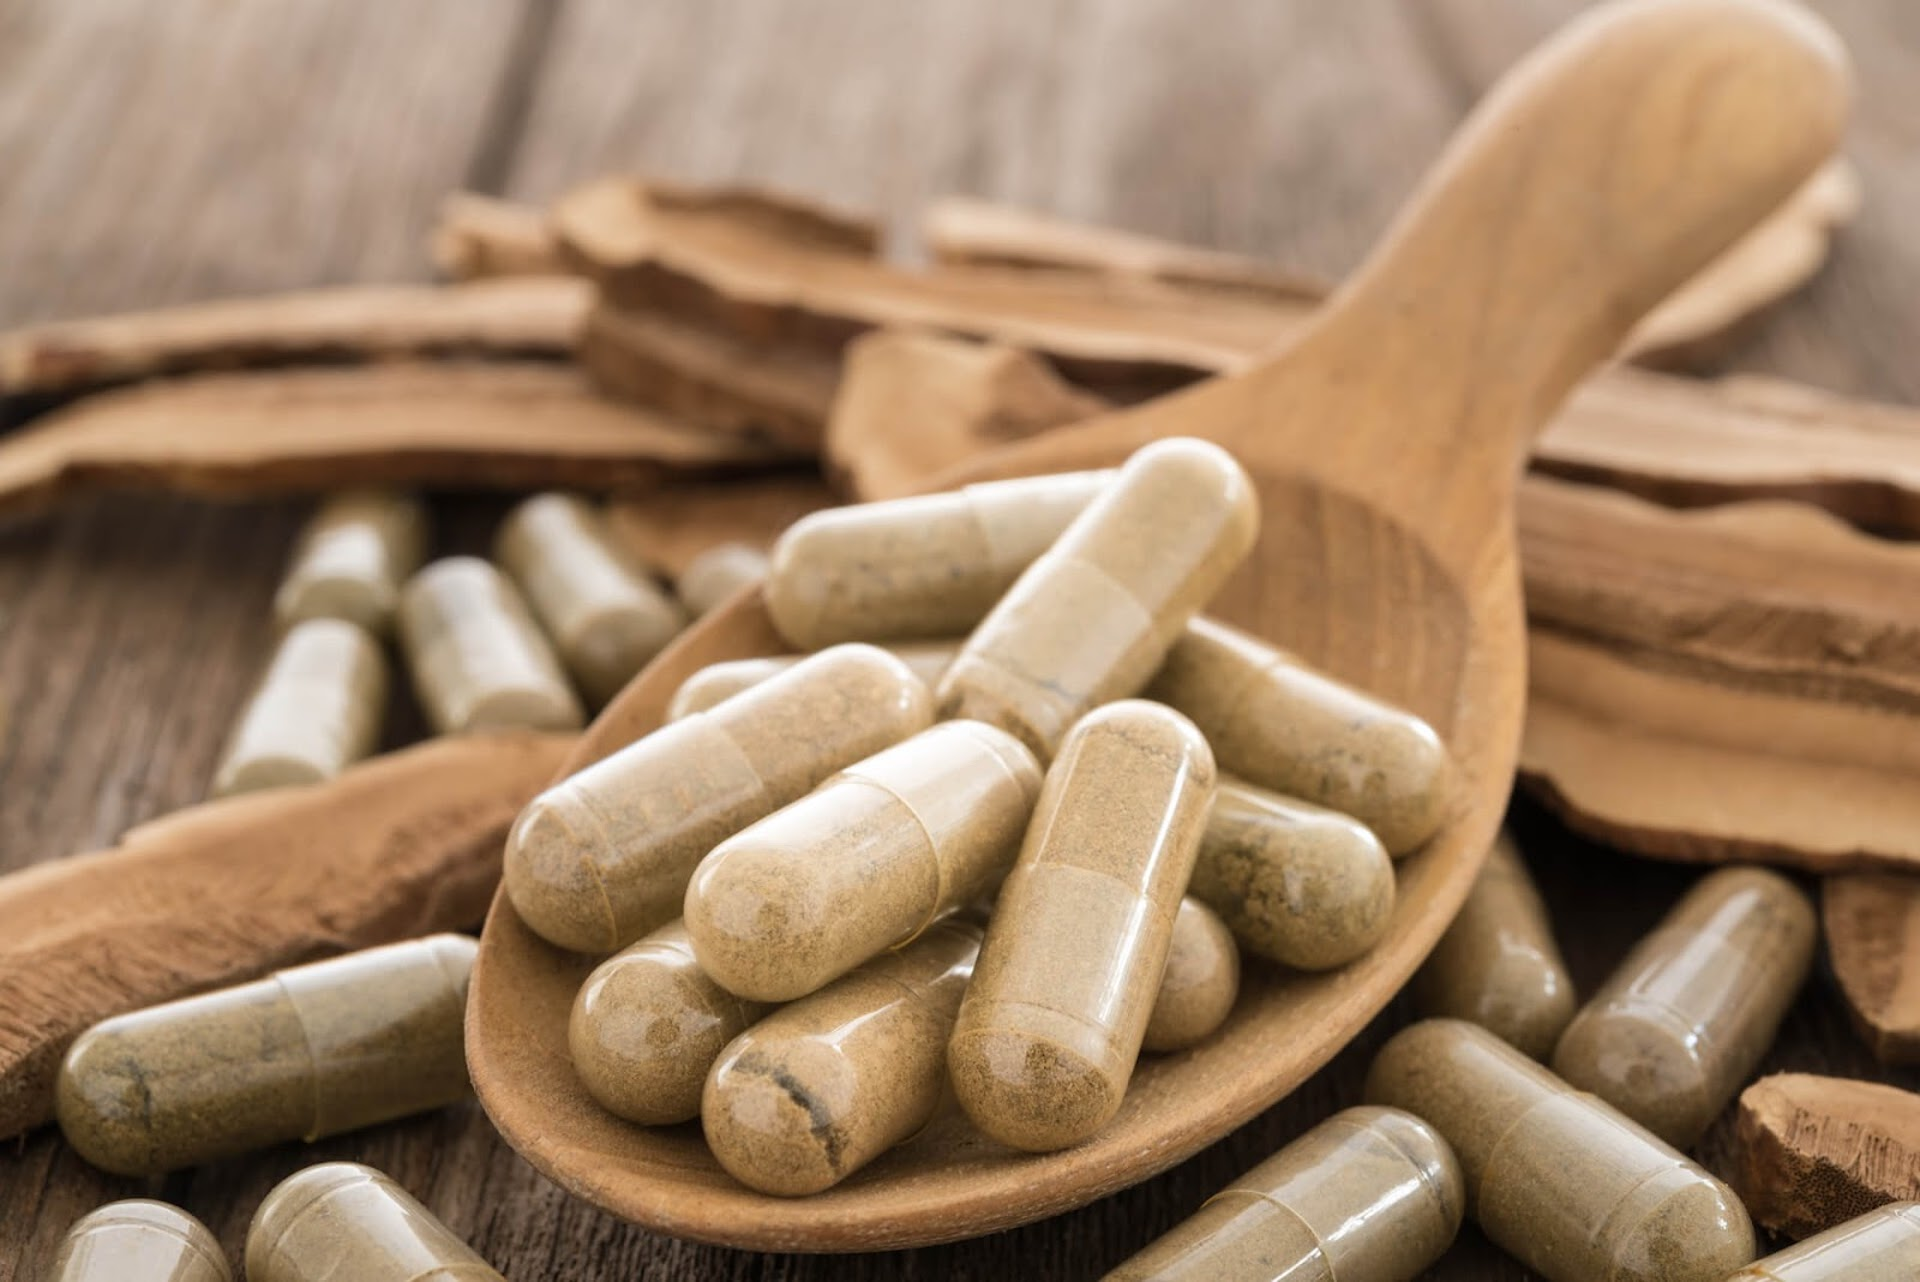 A wooden spoon with some mushroom extract powder in pill forms